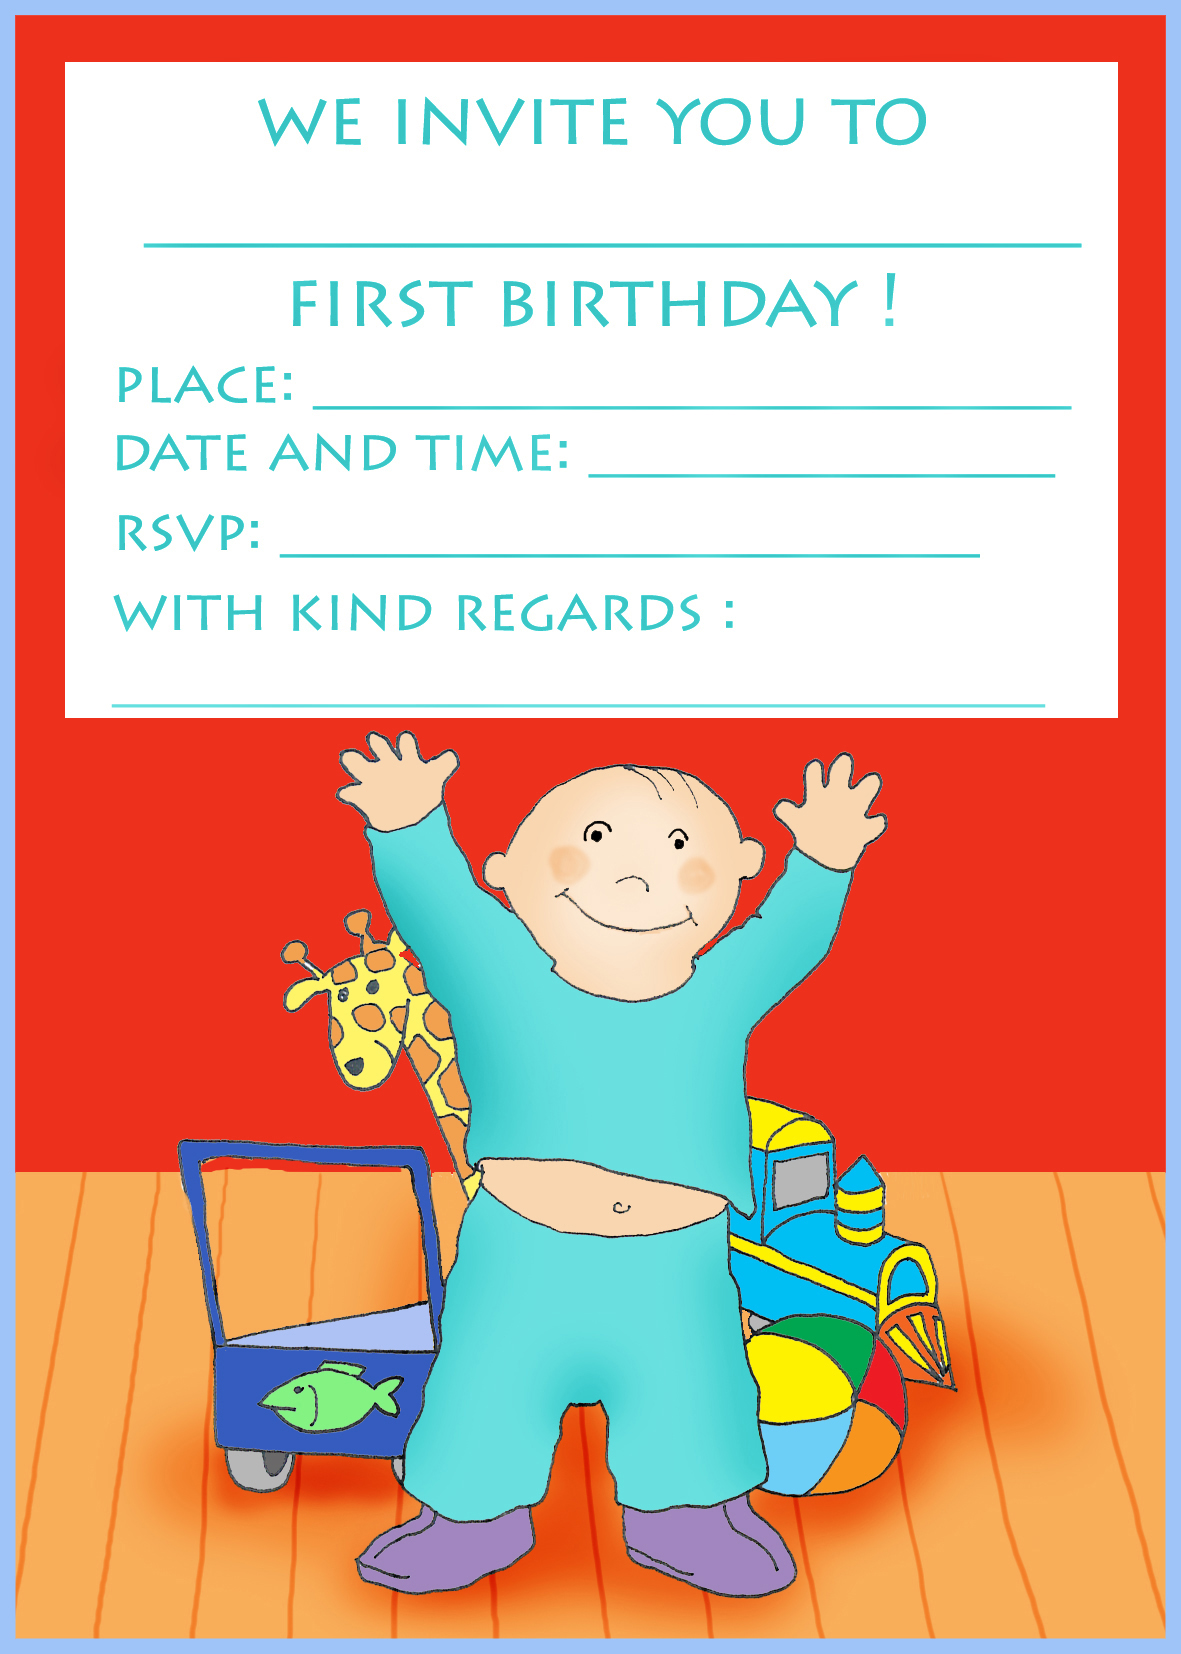 first birthday party invitation for boy and toys